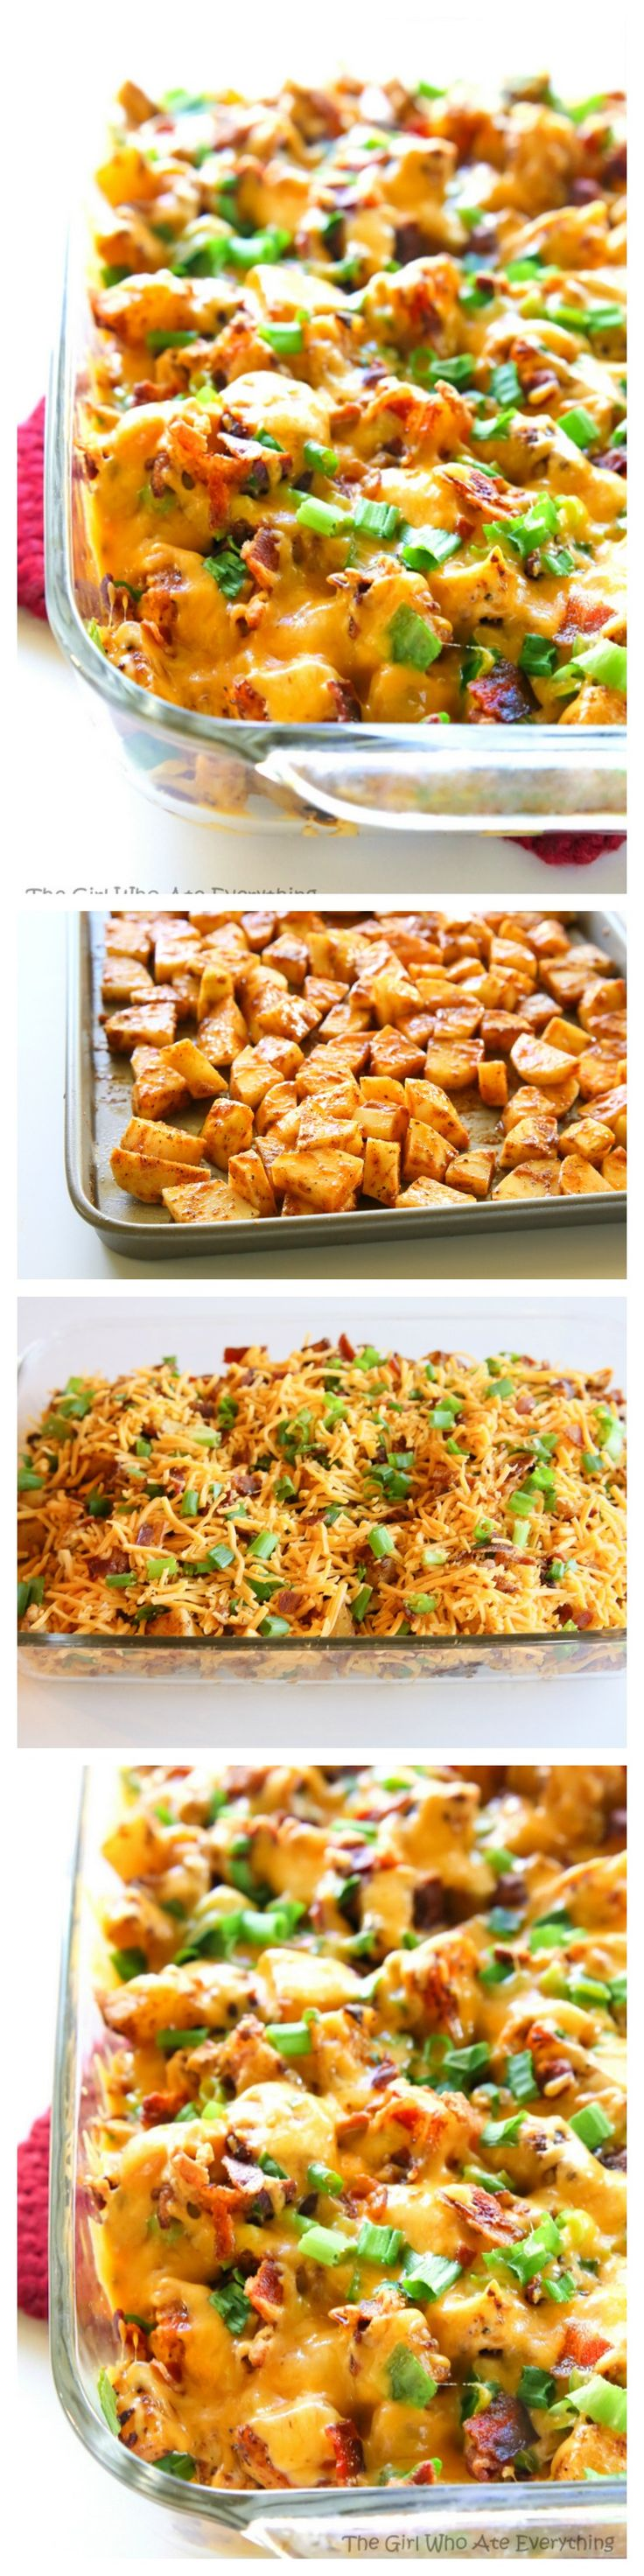 This Buffalo Chicken and Potato Casserole is layered with buffalo seasoned potatoes, chicken, and topped with cheese, bacon, and onions. Drizzle it with a little blue cheese to serve. the-girl-who-ate-everything.com